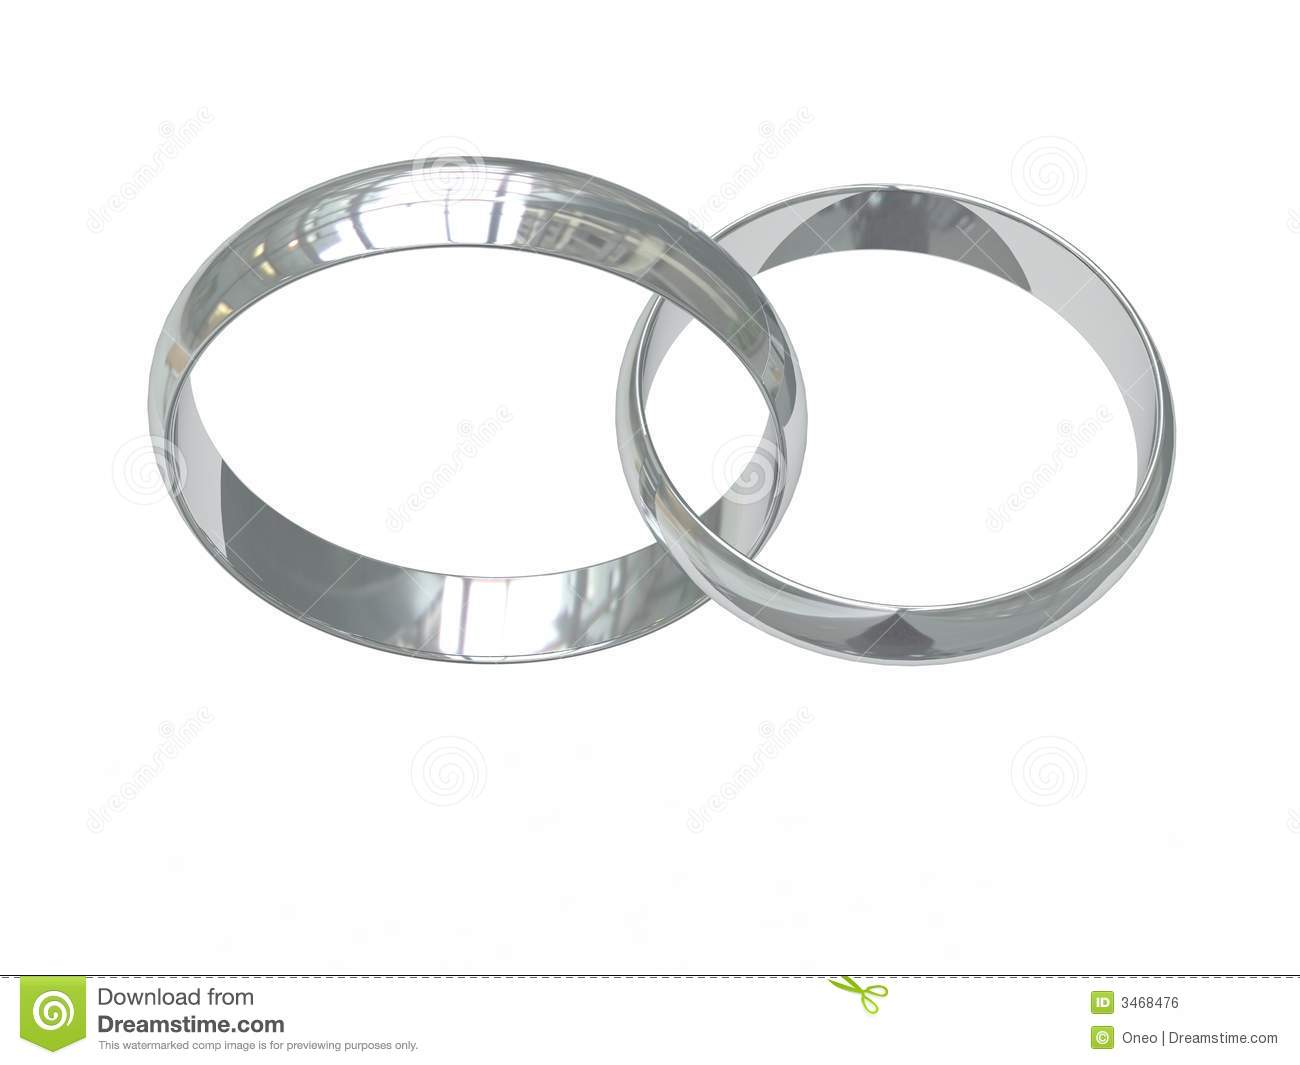 interlocking wedding rings clipart - photo #13